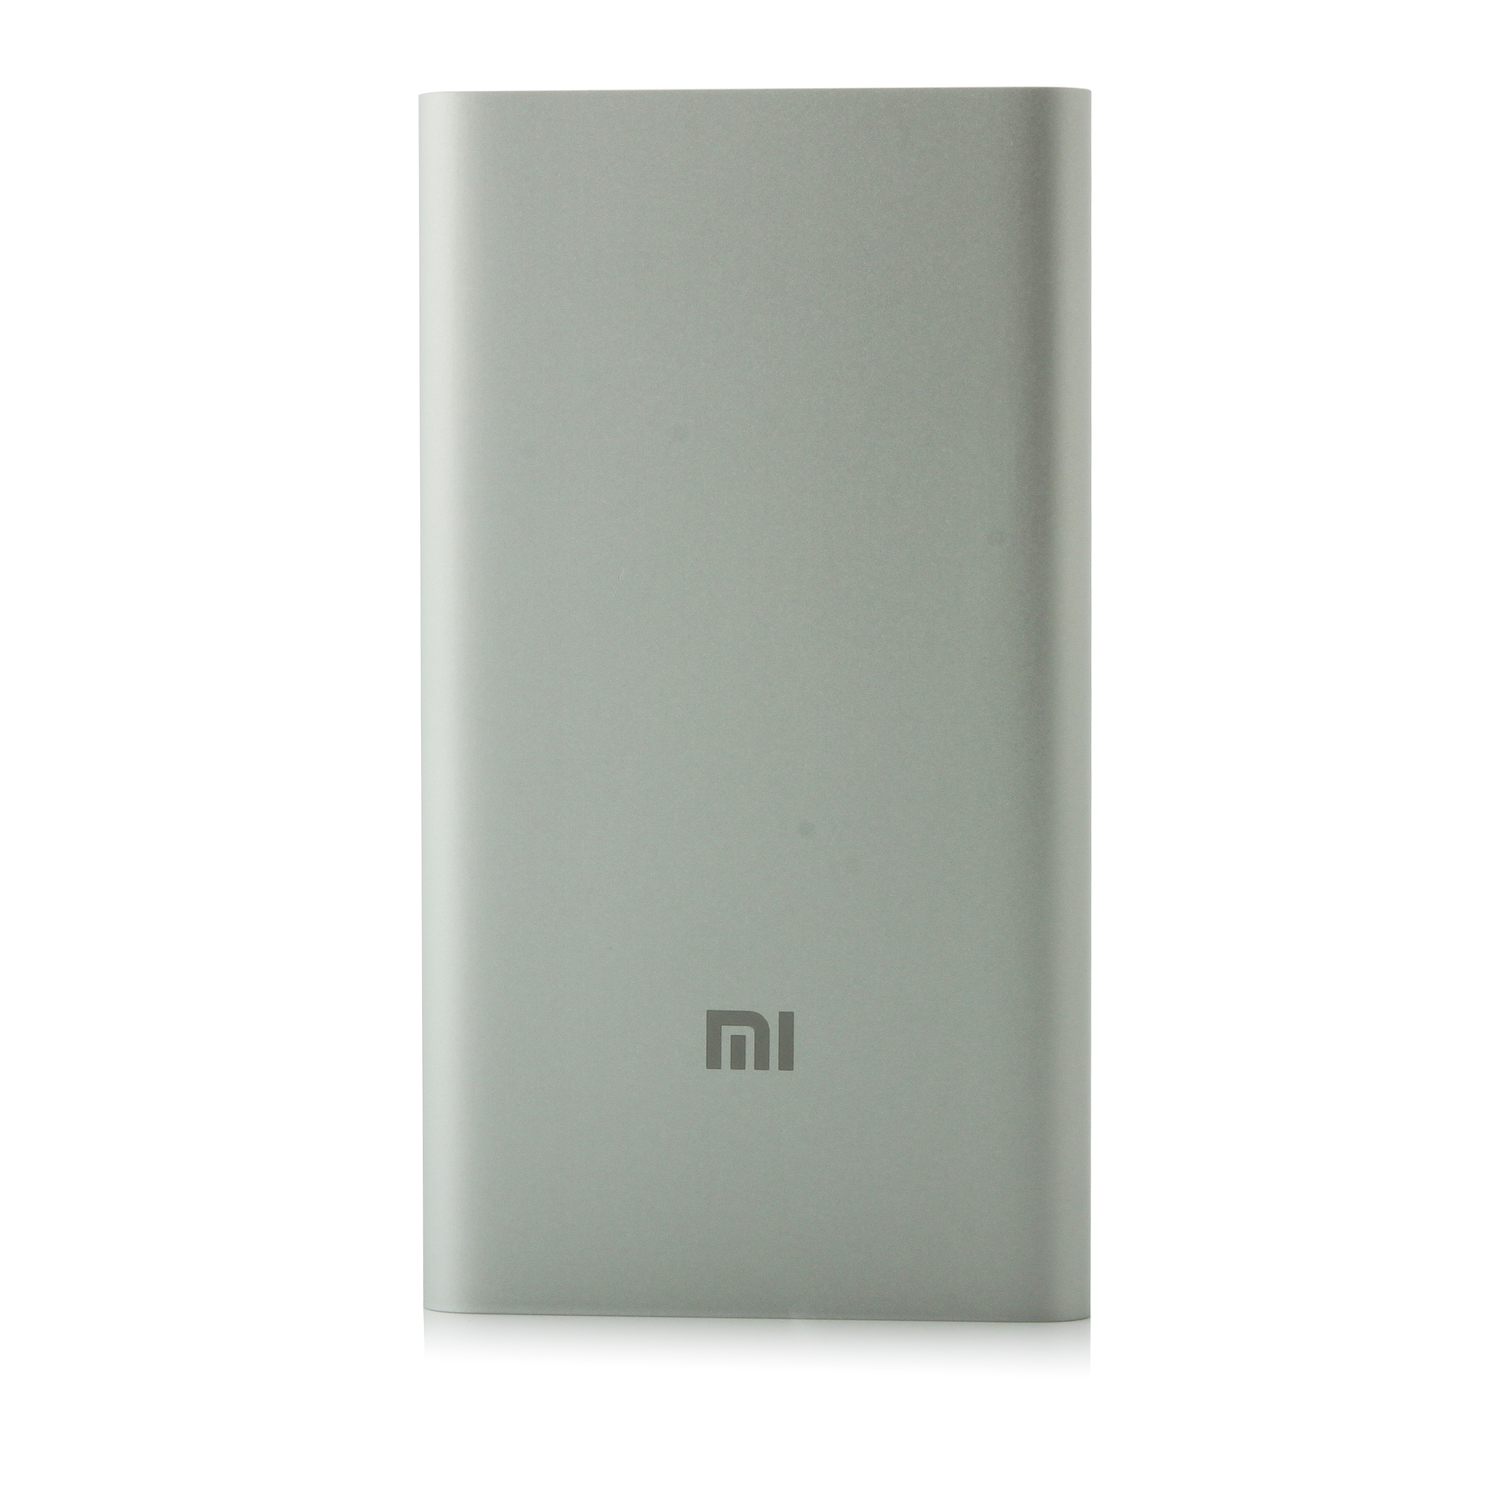 Original Ultrathin XIAOMI Power Bank 5V 2.1A 5000mAh for Smartphone Tablet